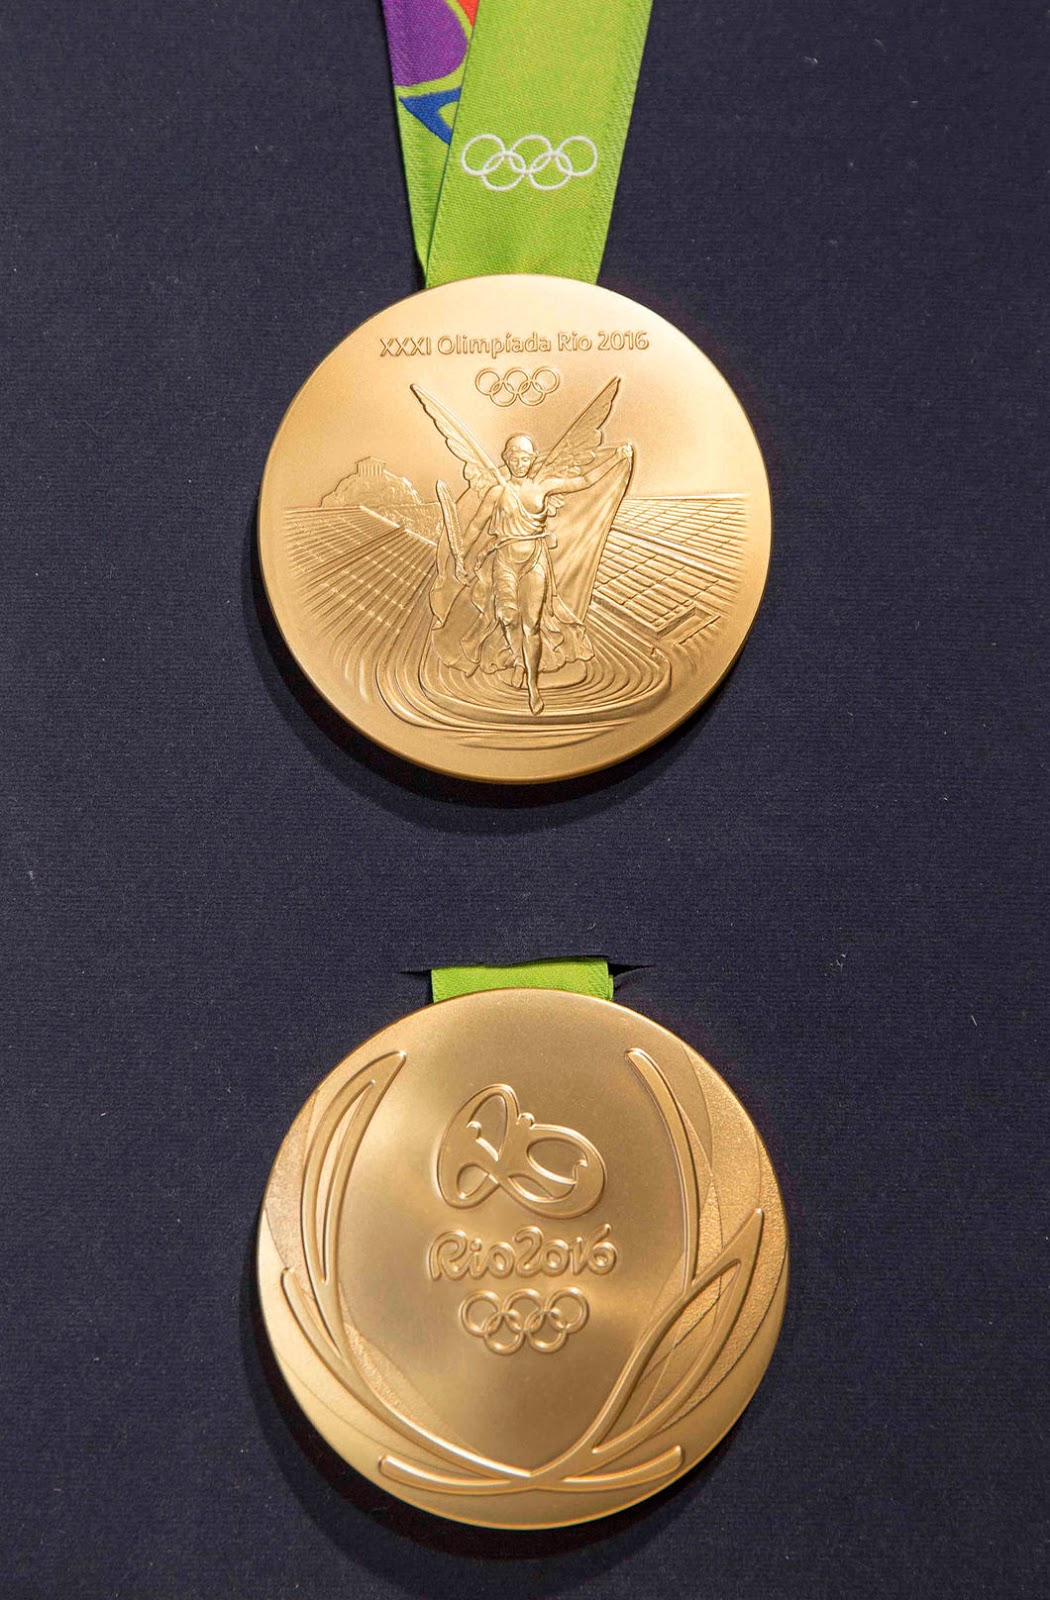 Jewelry News Network: The Rio 2016 Gold Medal Is Worth $564